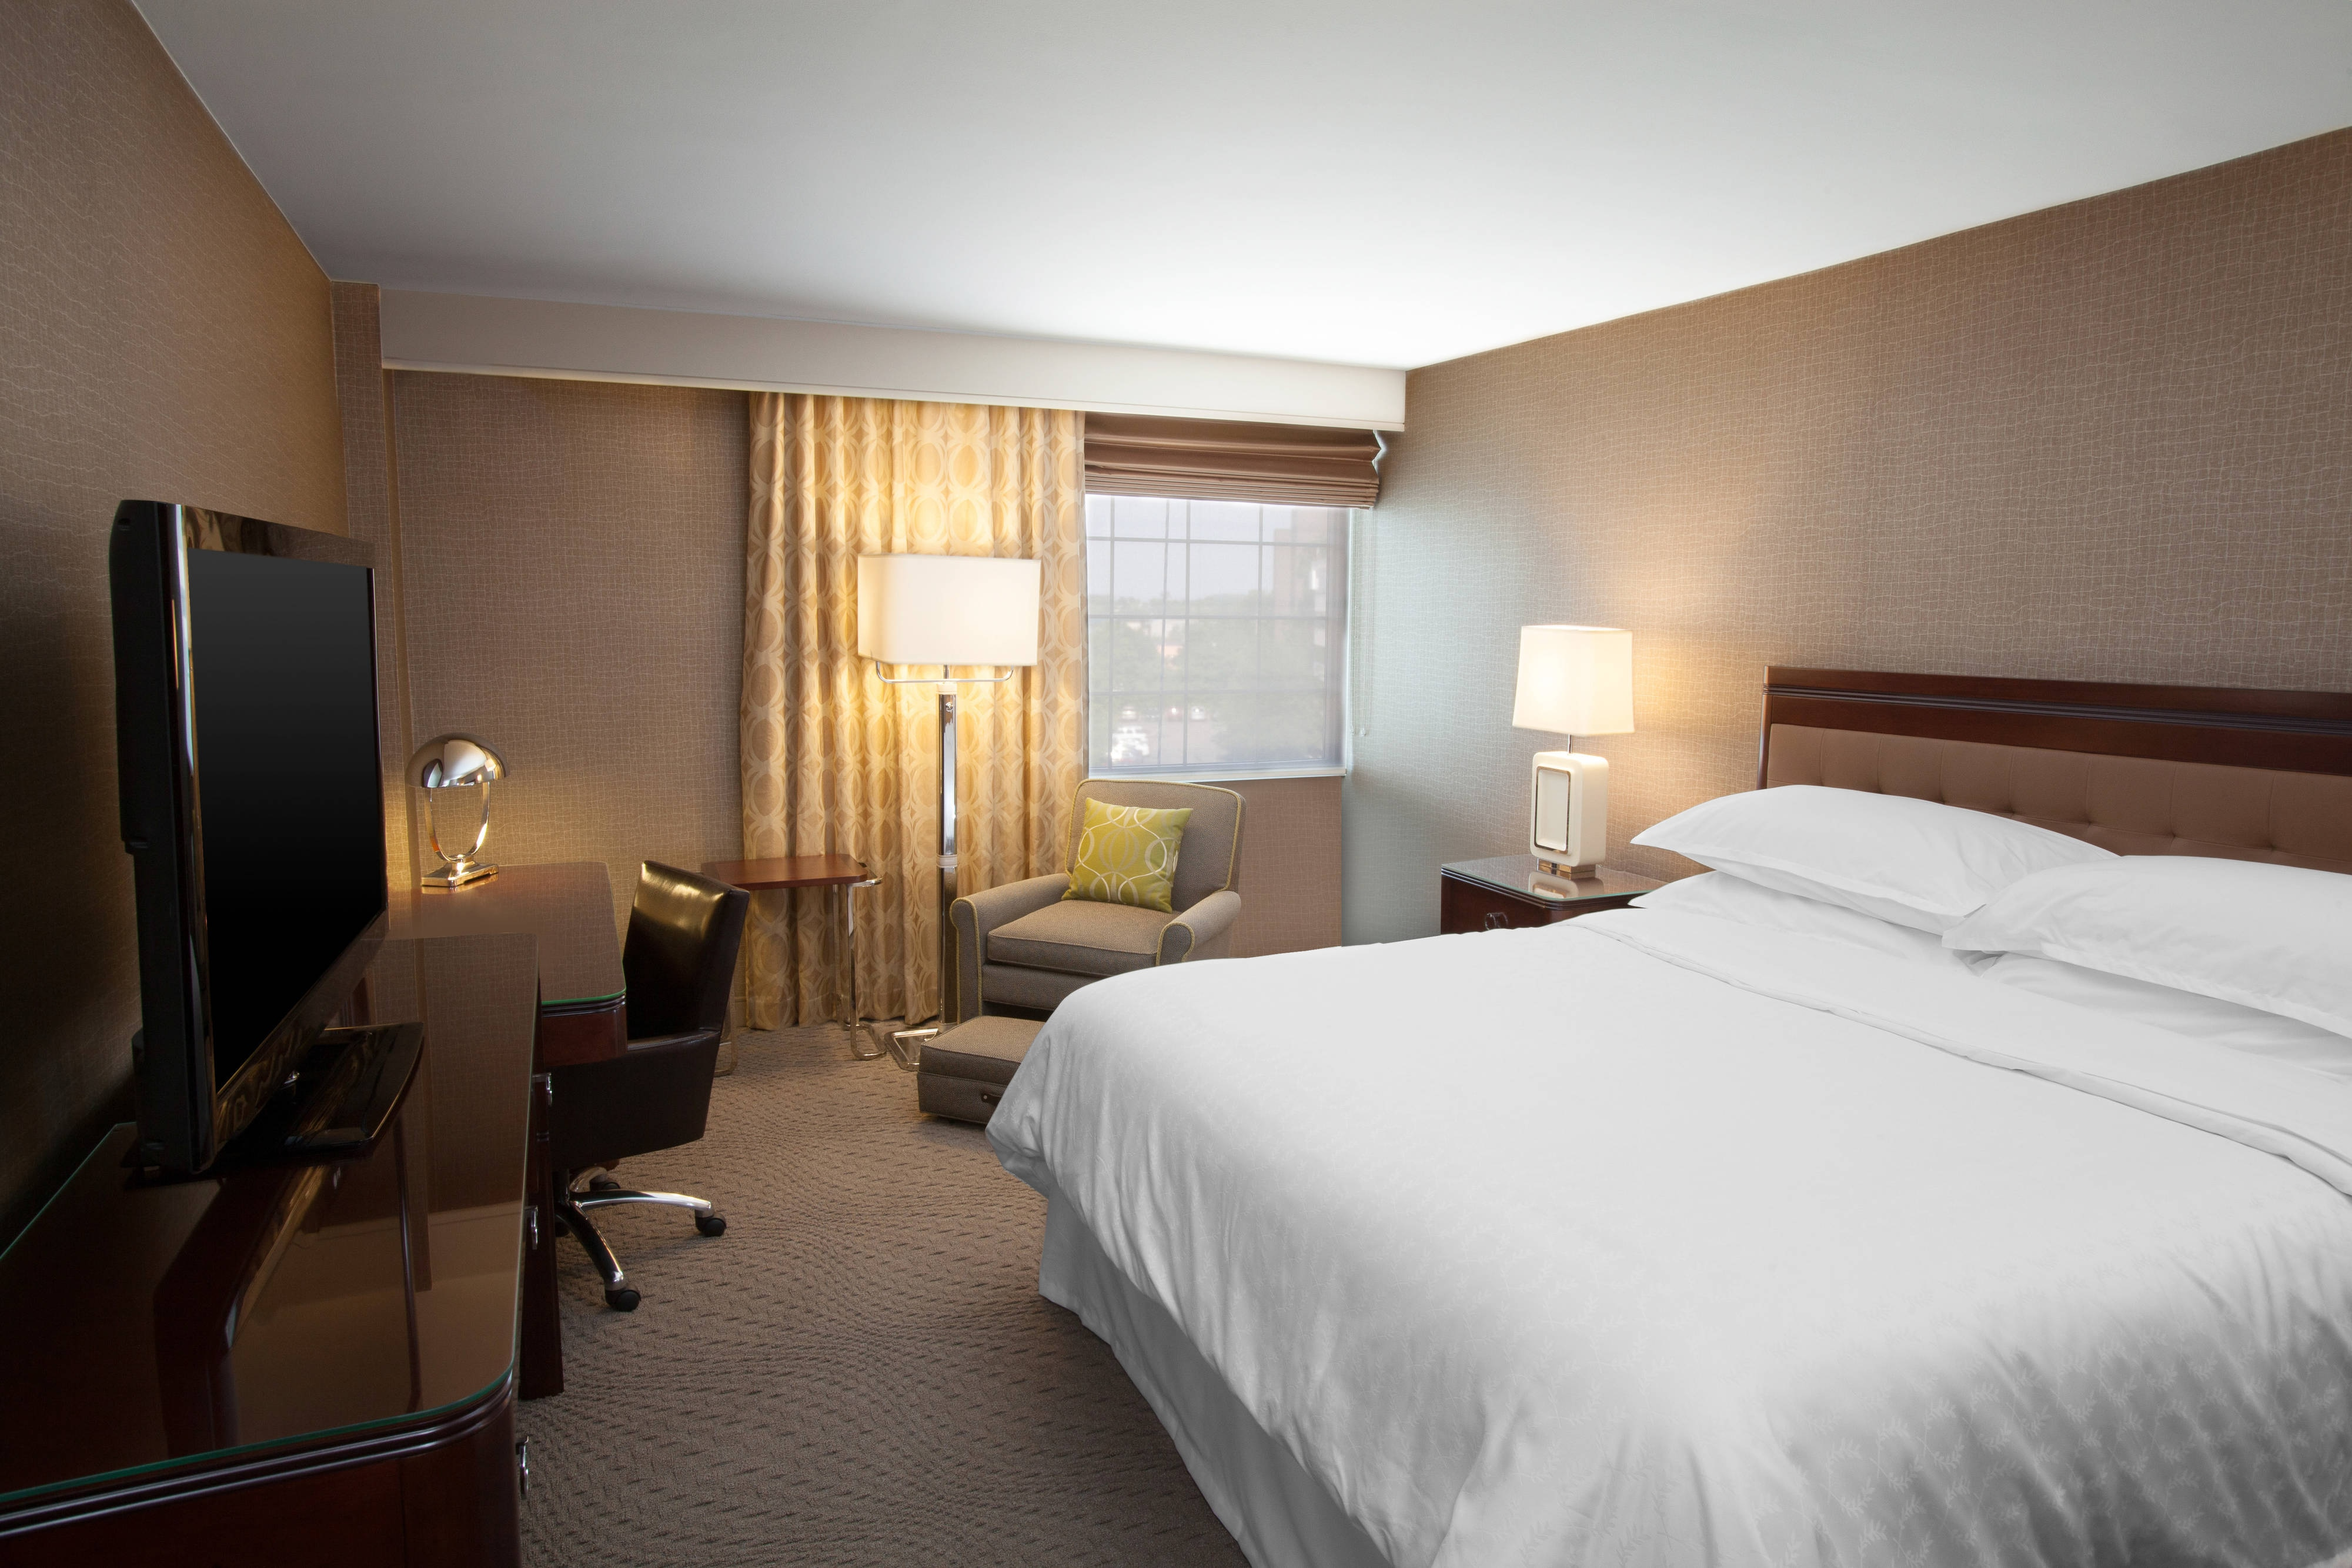 Hotel Rooms Near Hotel Rooms Near Pittsburgh Airport | Sheraton Pittsburgh